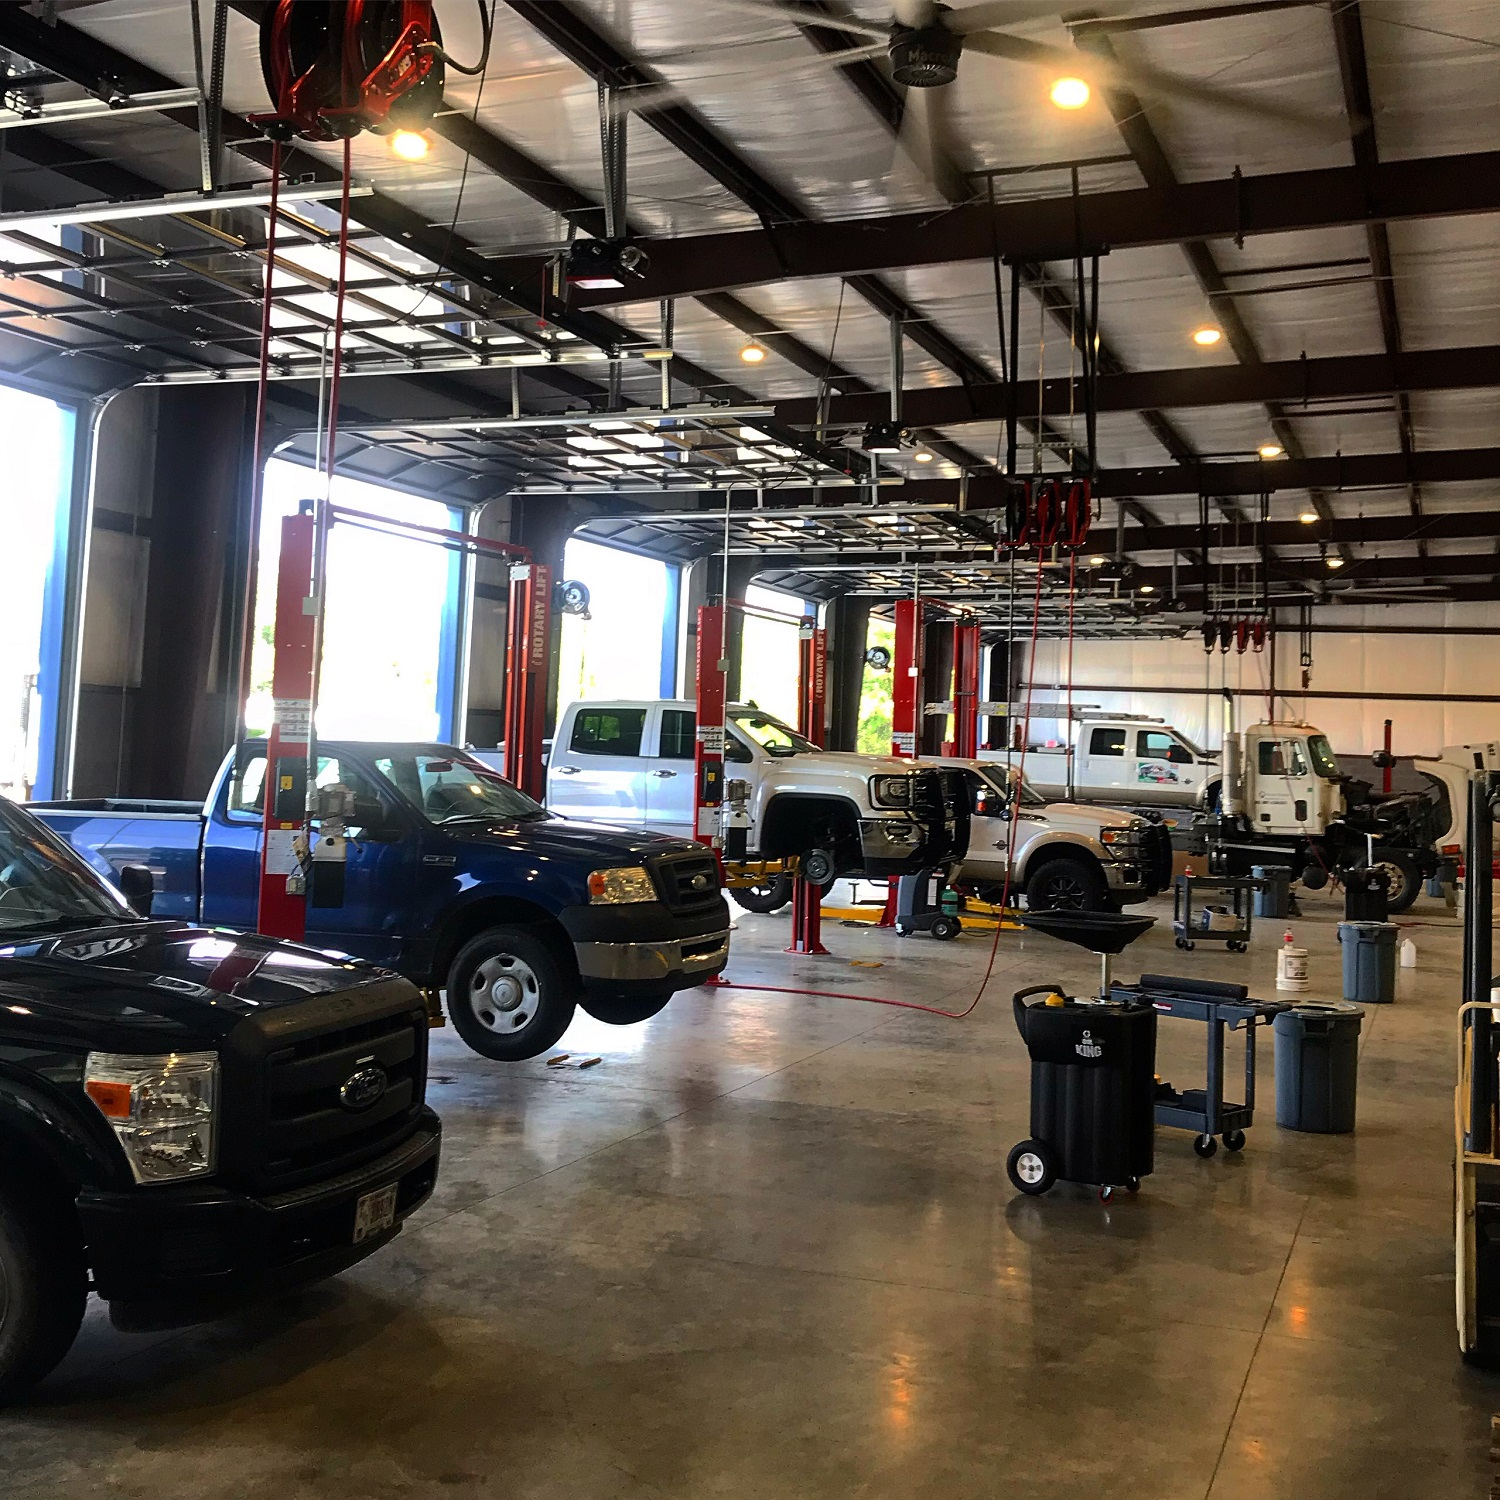 Commercial Vehicle Repairs Available at Complete Tire & Service in Columbus, GA 31901, Opelika, AL 36804 and Columbus, GA 31903